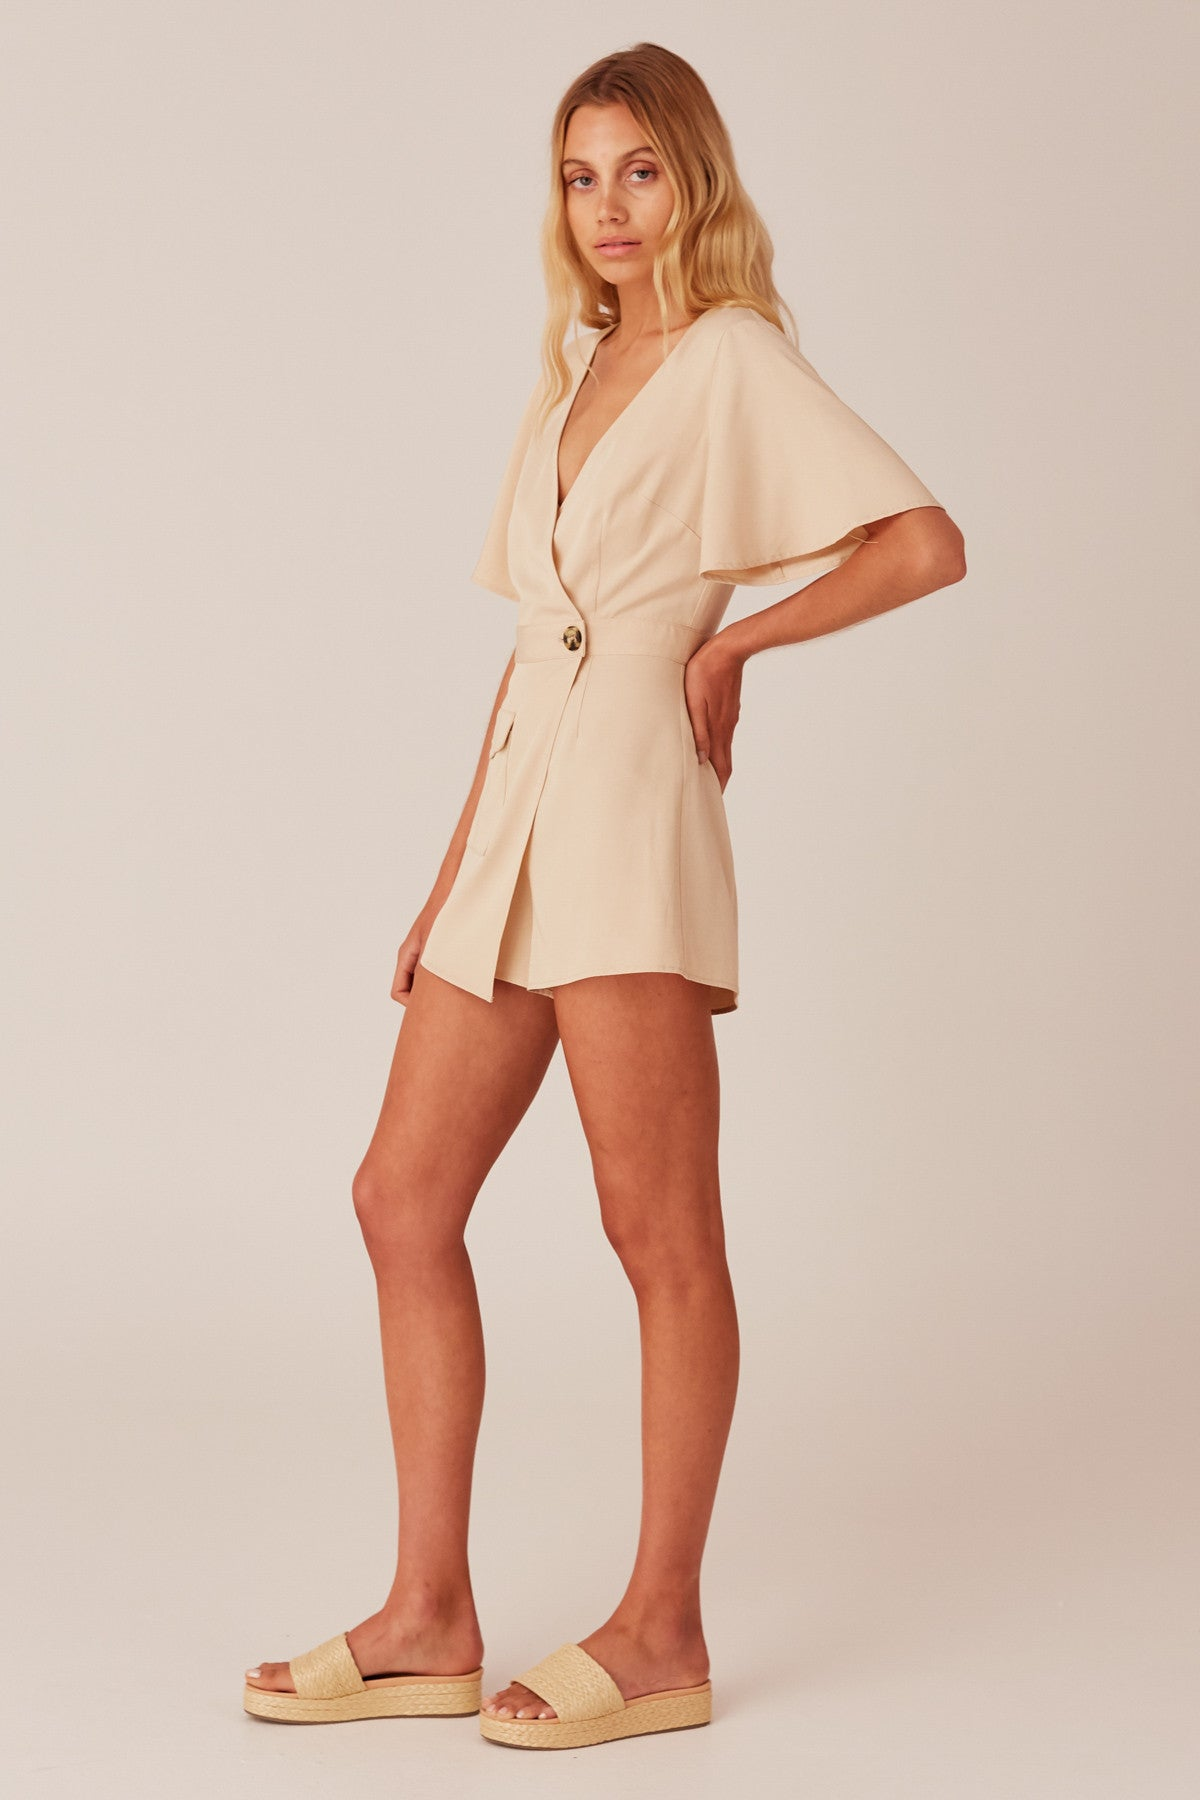 Pastime Playsuit